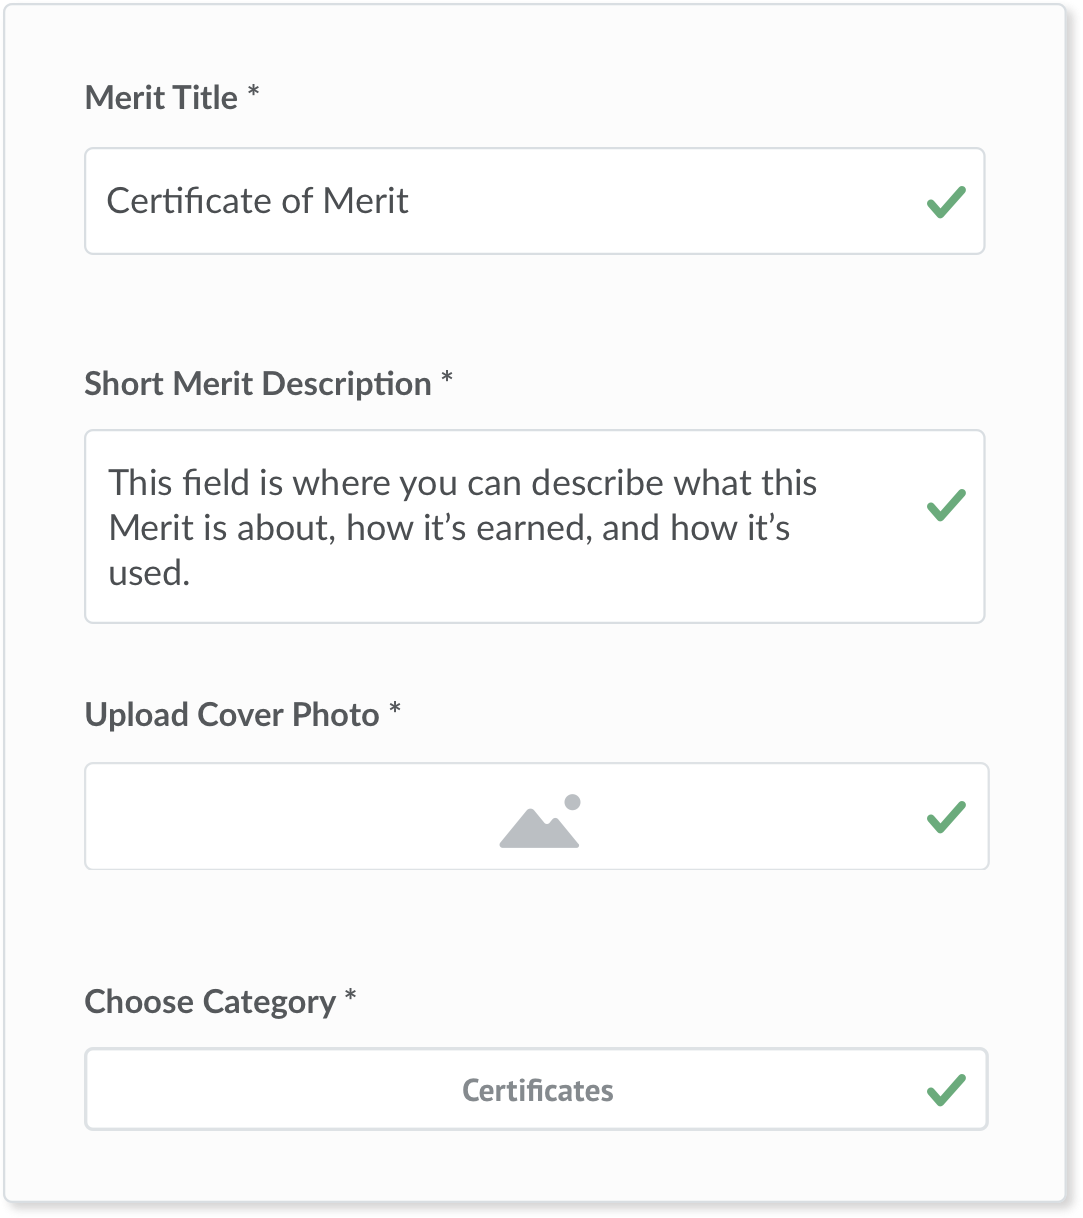 The create a merit template screen from the Sigma application